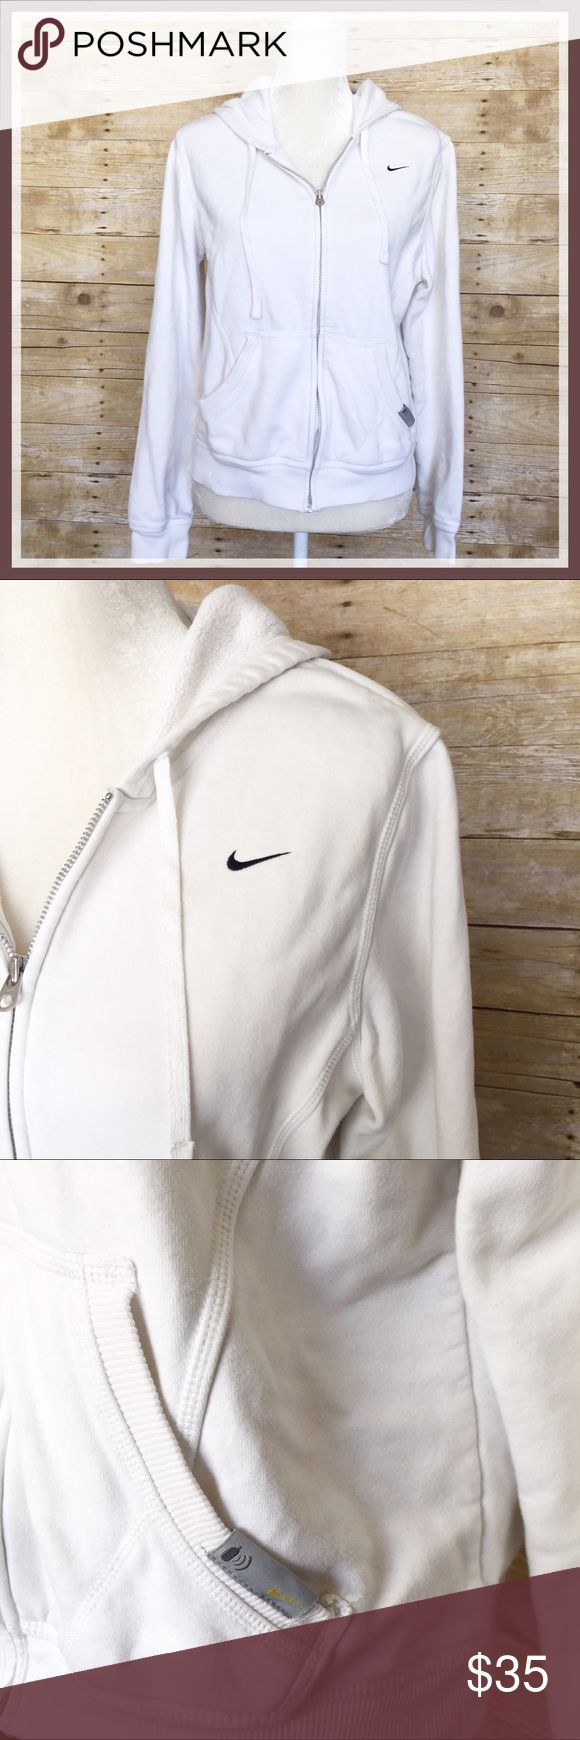 Nike White Zip Up Hoodie Audio Sweatshirt Nike white zip up hoodie. Size large, slimmer fit. Audio pocket kangaroo pouch on front. Some fuzzies on inside lining, as normal with prior light use, but is in excellent condition. Bust measures 20 inches and length is 21. Thanks so much for looking! Nike Tops Sweatshirts & Hoodies